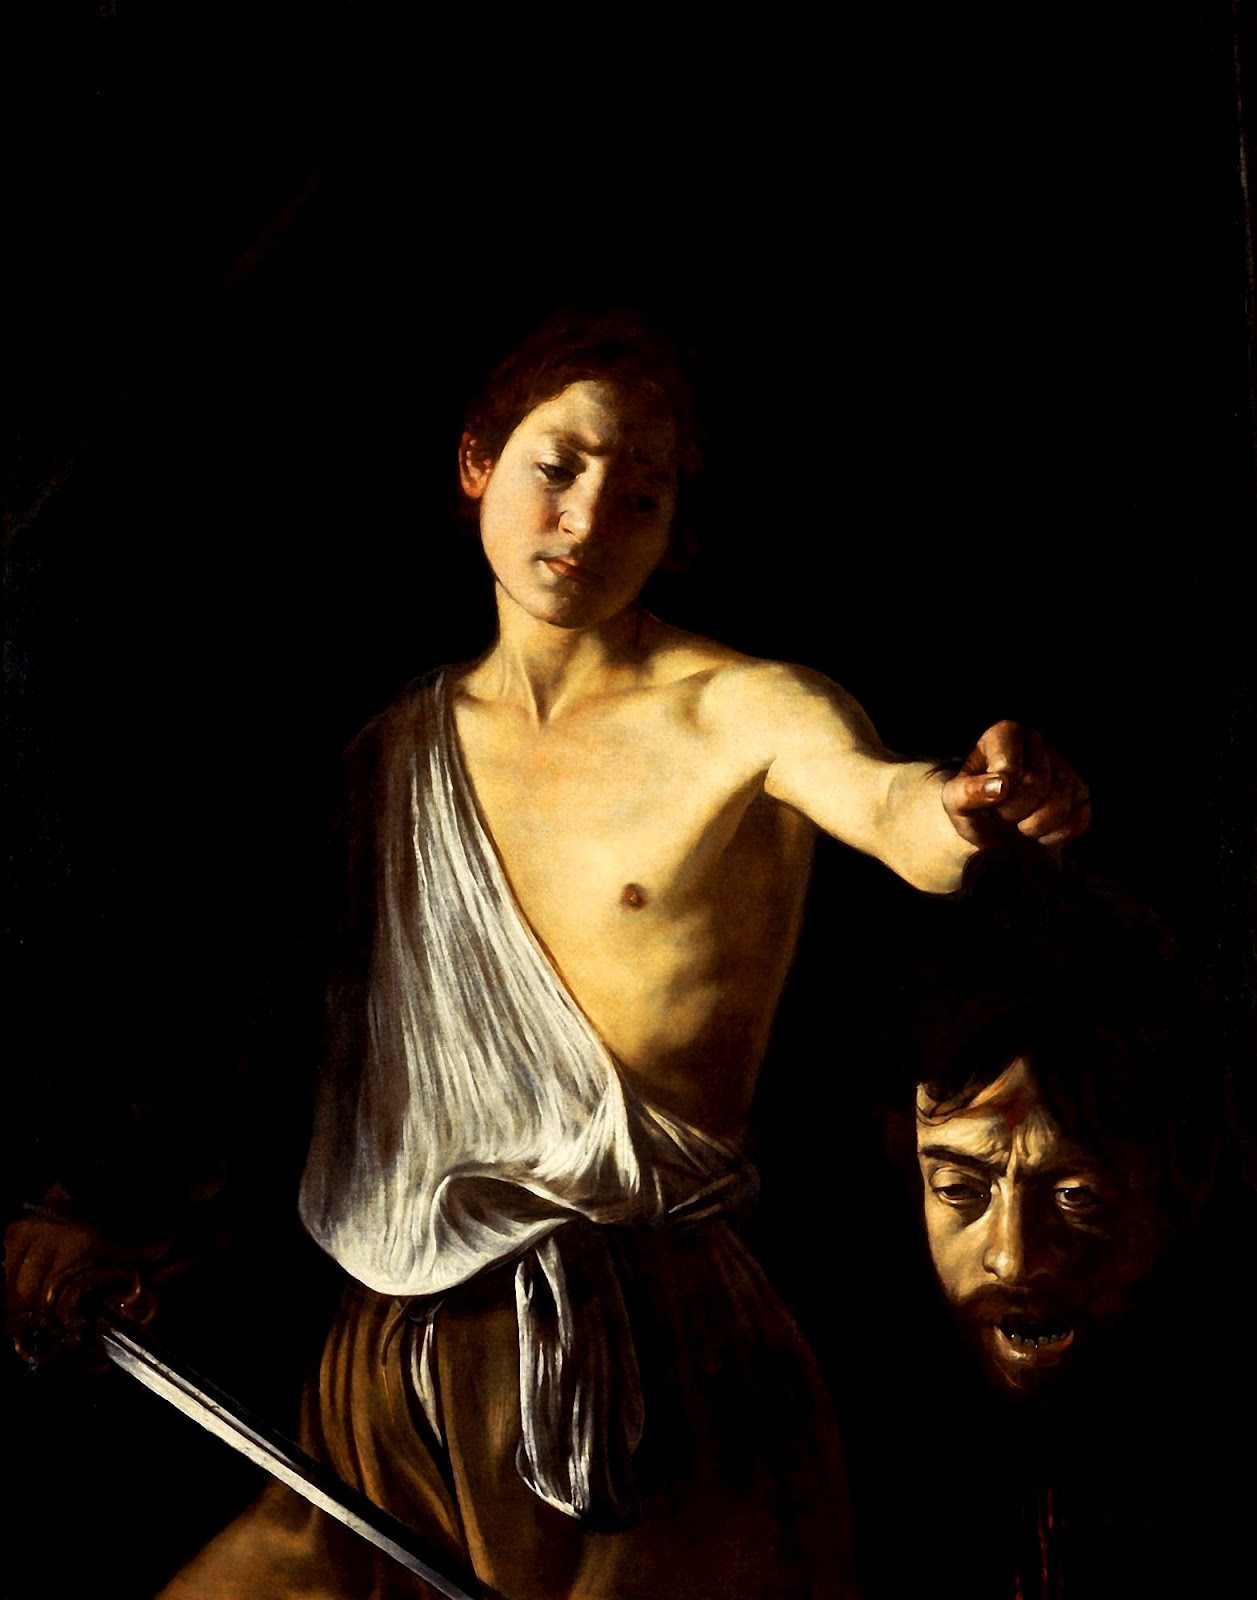 caravage david goliath painting